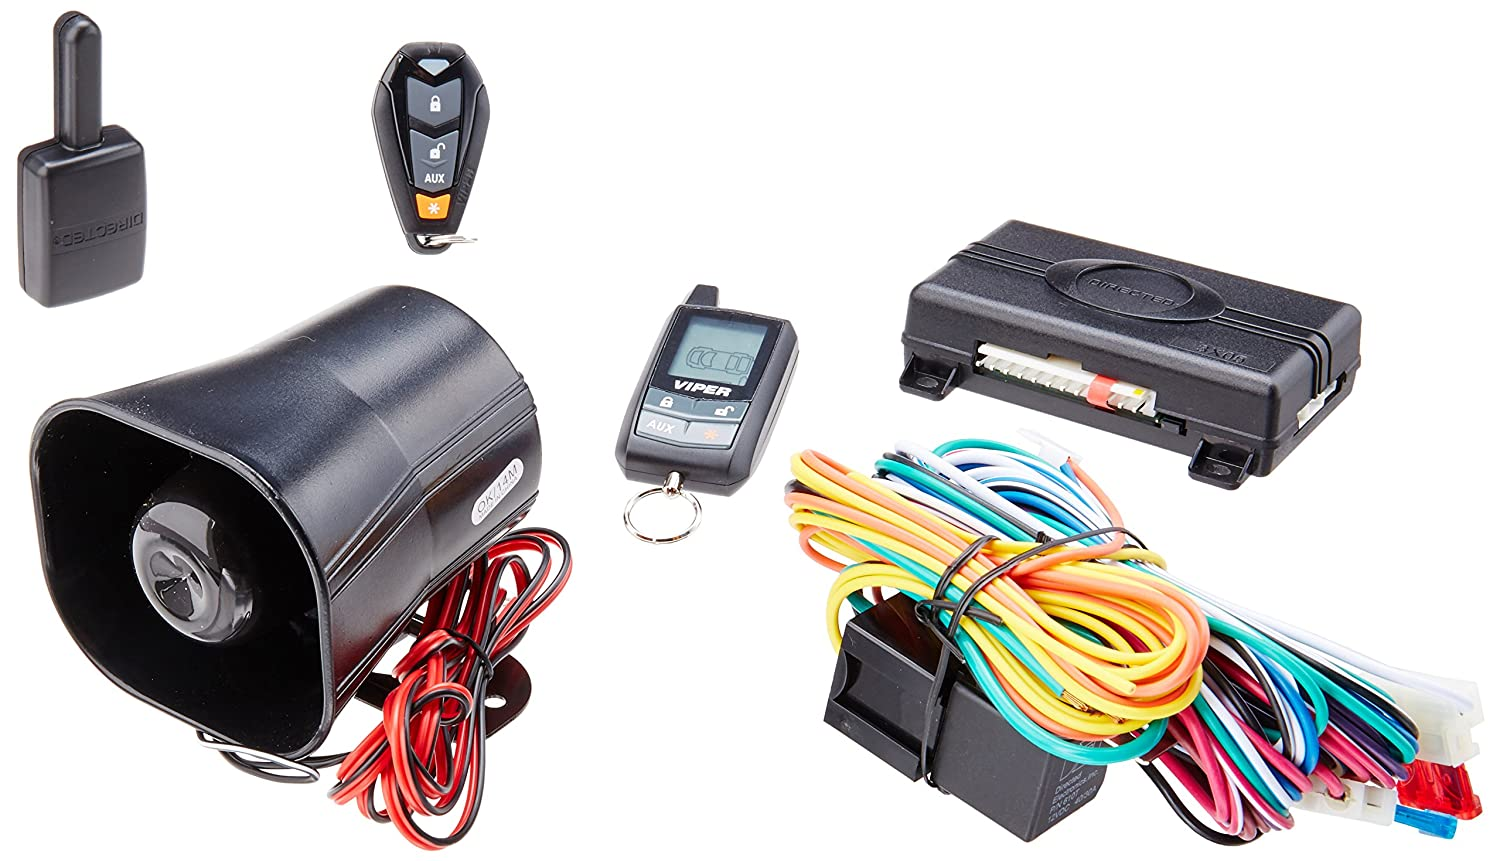 Viper 5806v 2 Way Wiring Trusted Diagram Security System 3305v U2022 Remote Start